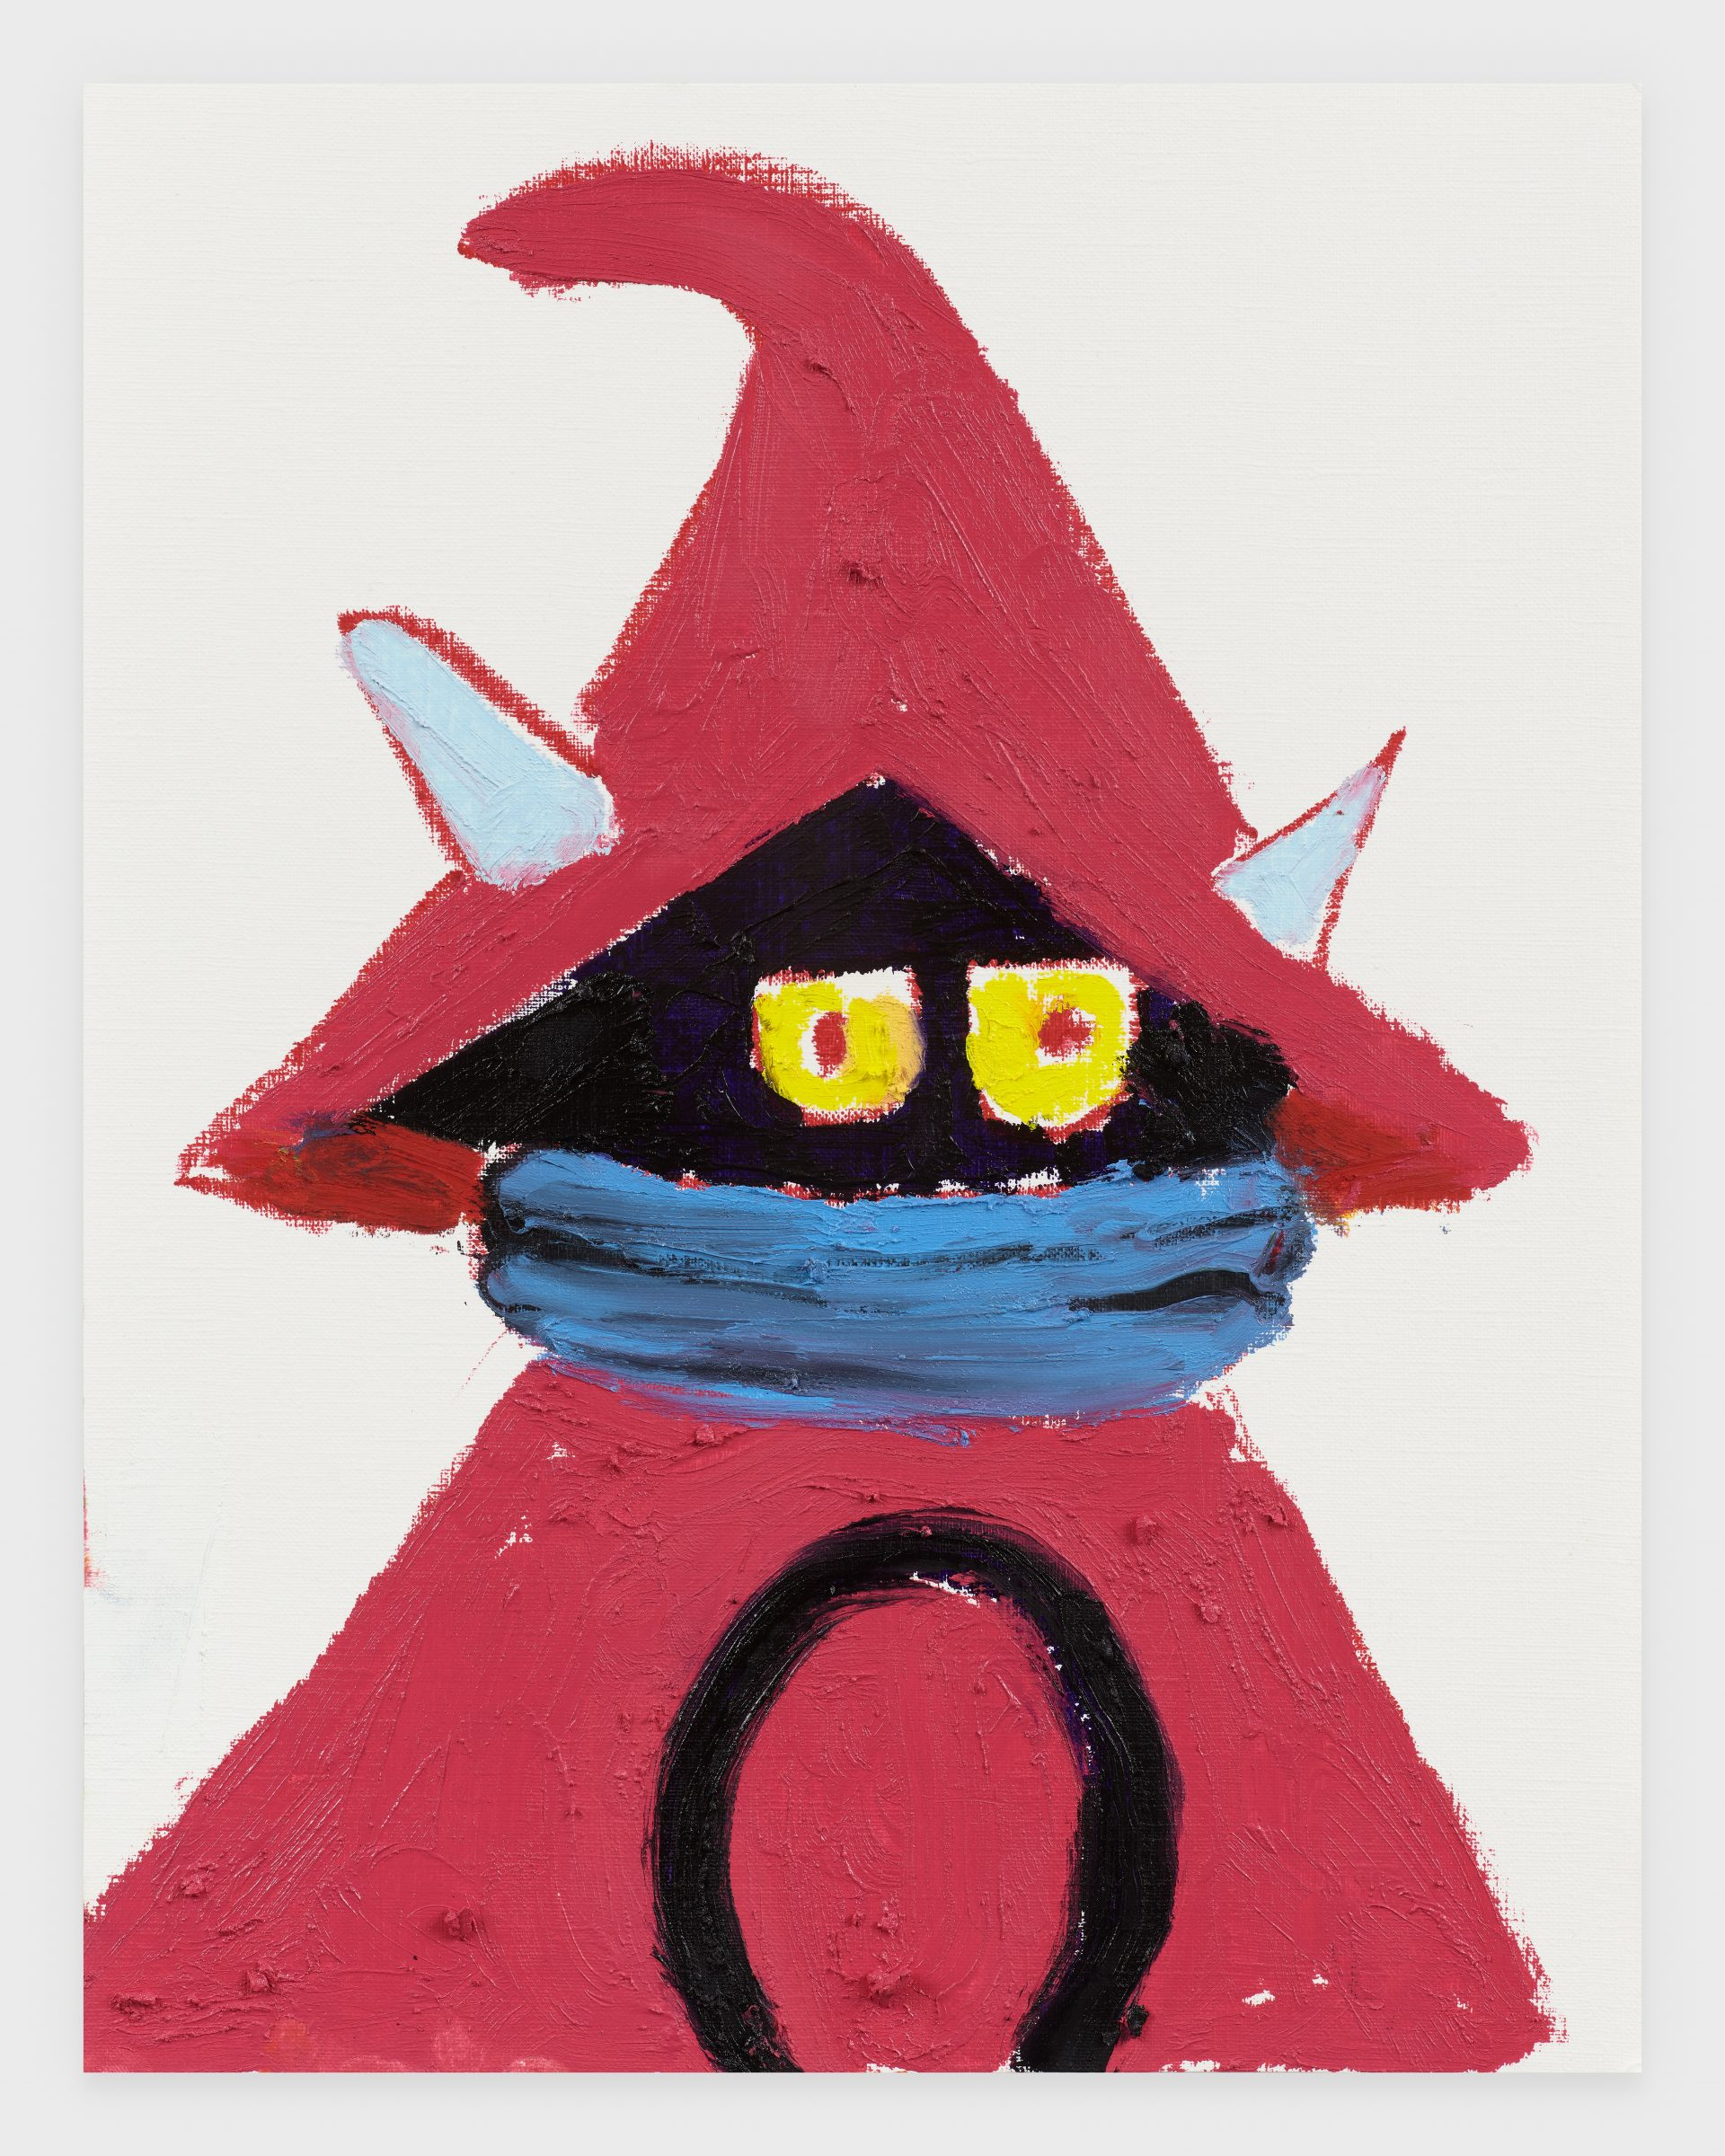 Orko, 2020, Oil stick on archival paper, 11 x 14 inches